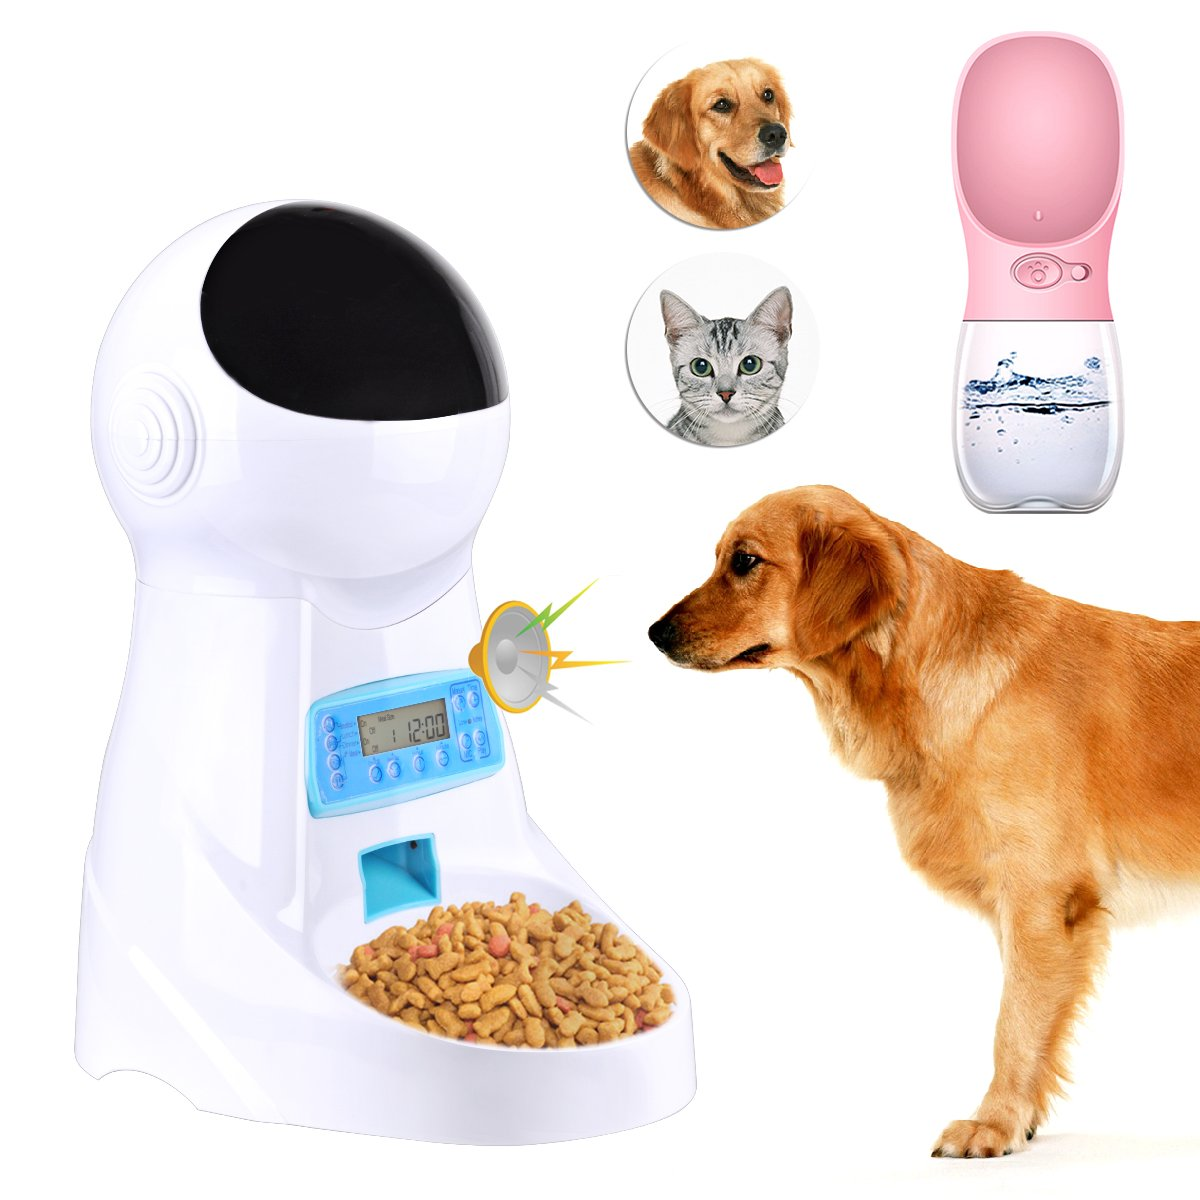 Congerate Automatic Pet Feeder Dog Cat Feeder Food Dispenser with Timer, LCD Display and Sound Recording And Pet Water Feeder Bottle (Pink)